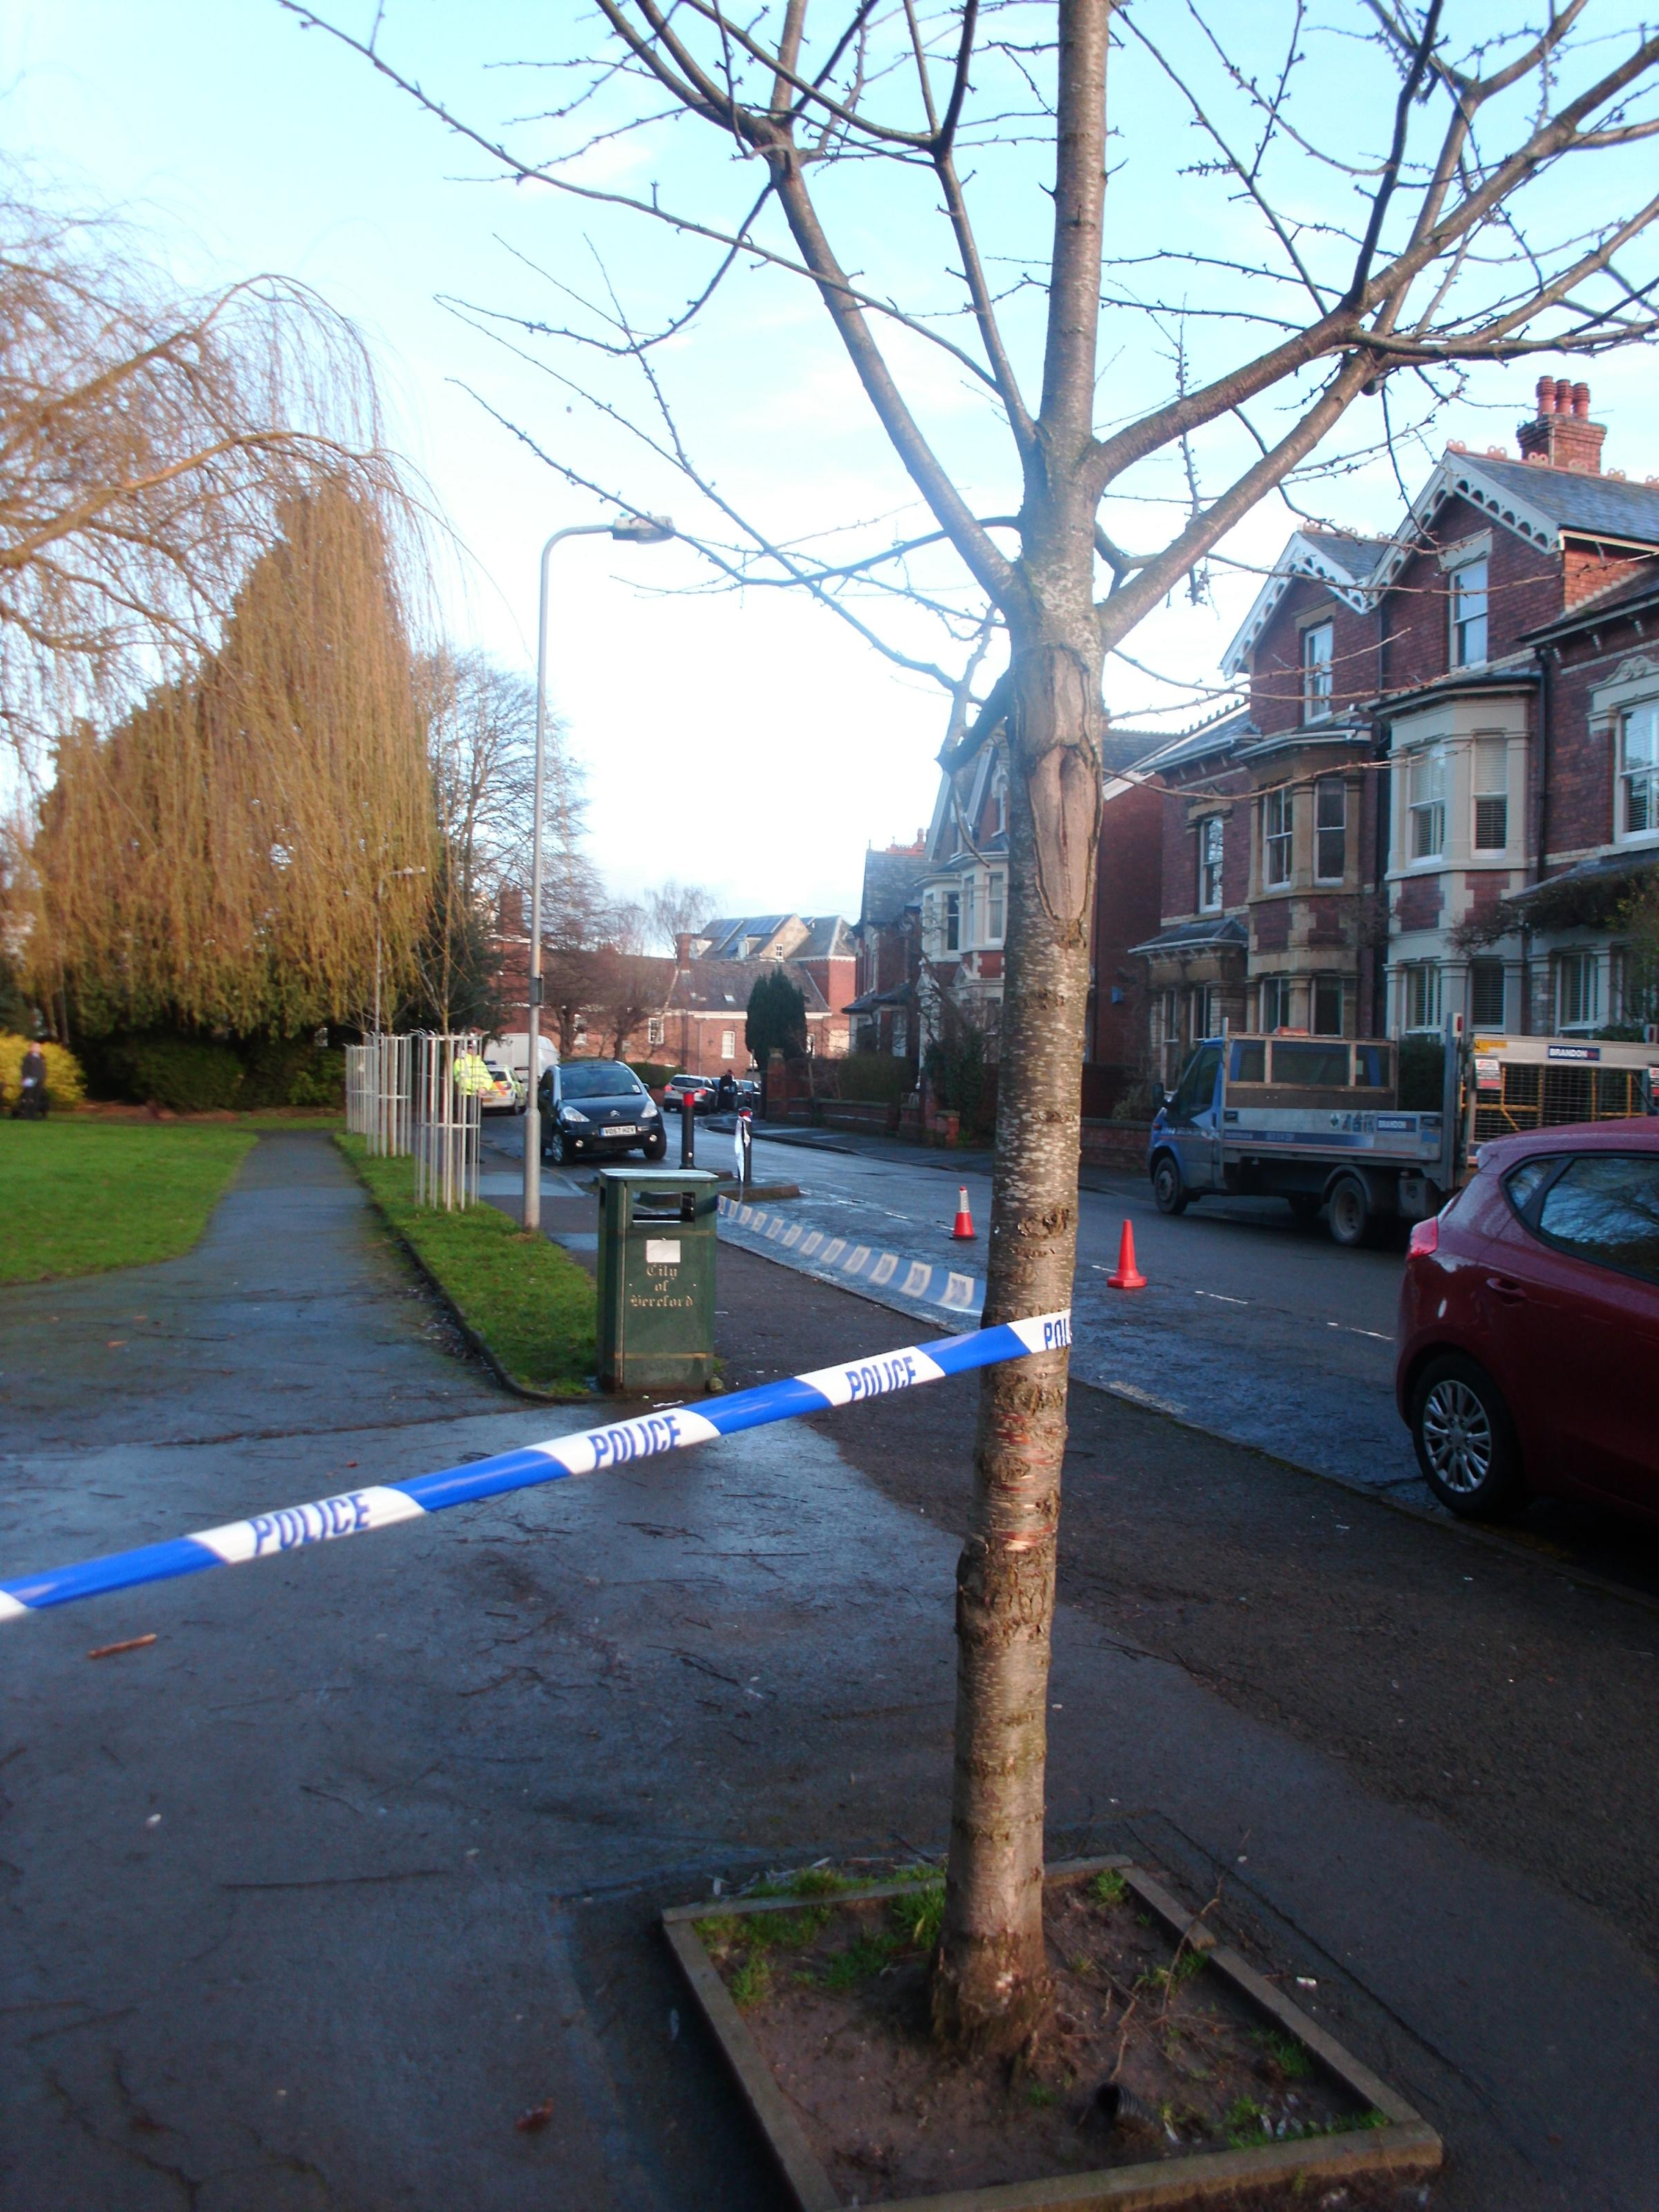 Police sealed off an area around Cantilupe Gardens in Hereford after a body was found.